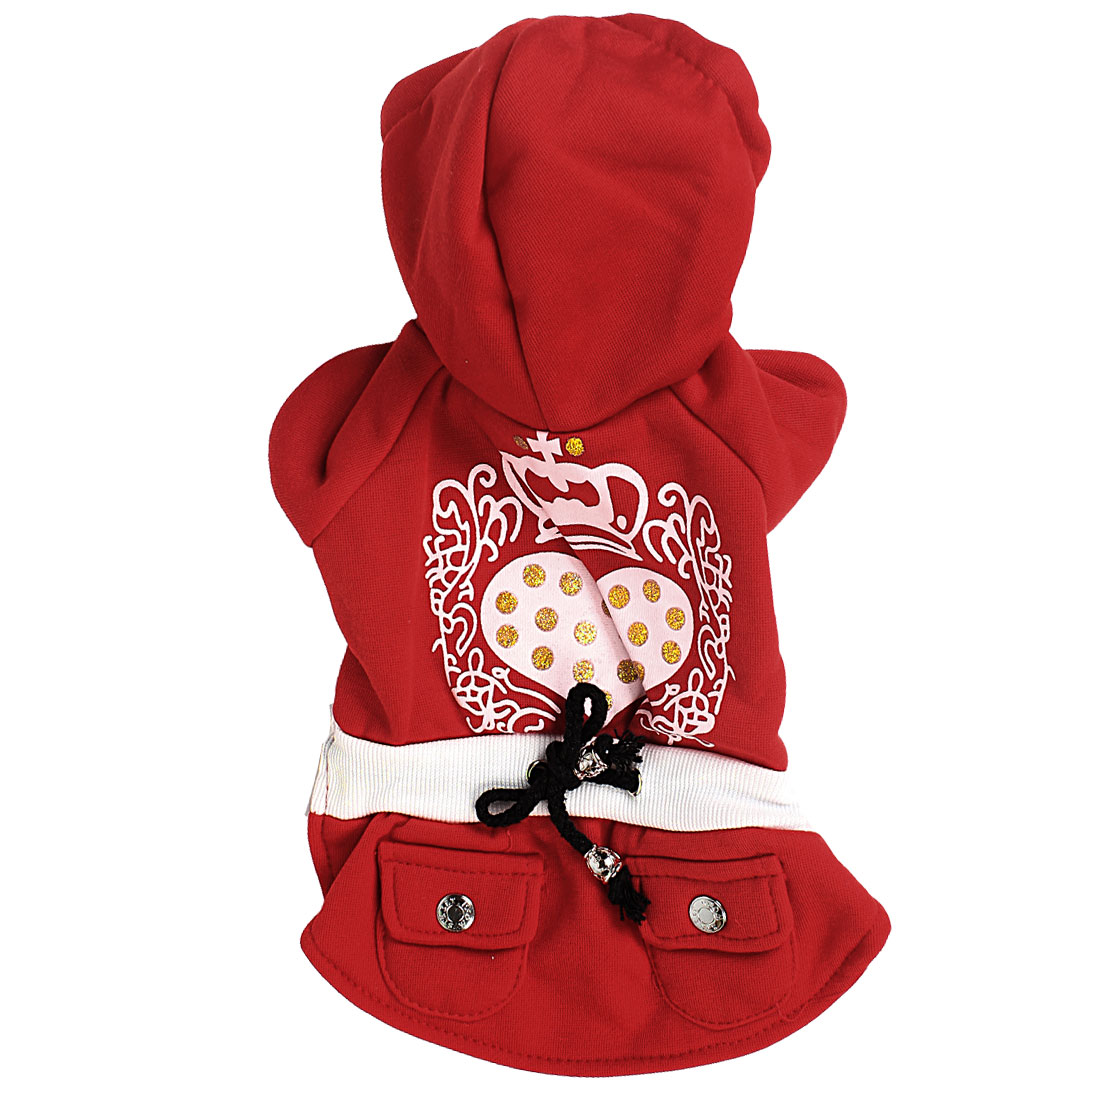 Winter Warm Sleeved Hoodie Pet Dog Pug Doggy Apparel Coat Clothes Red White Size M